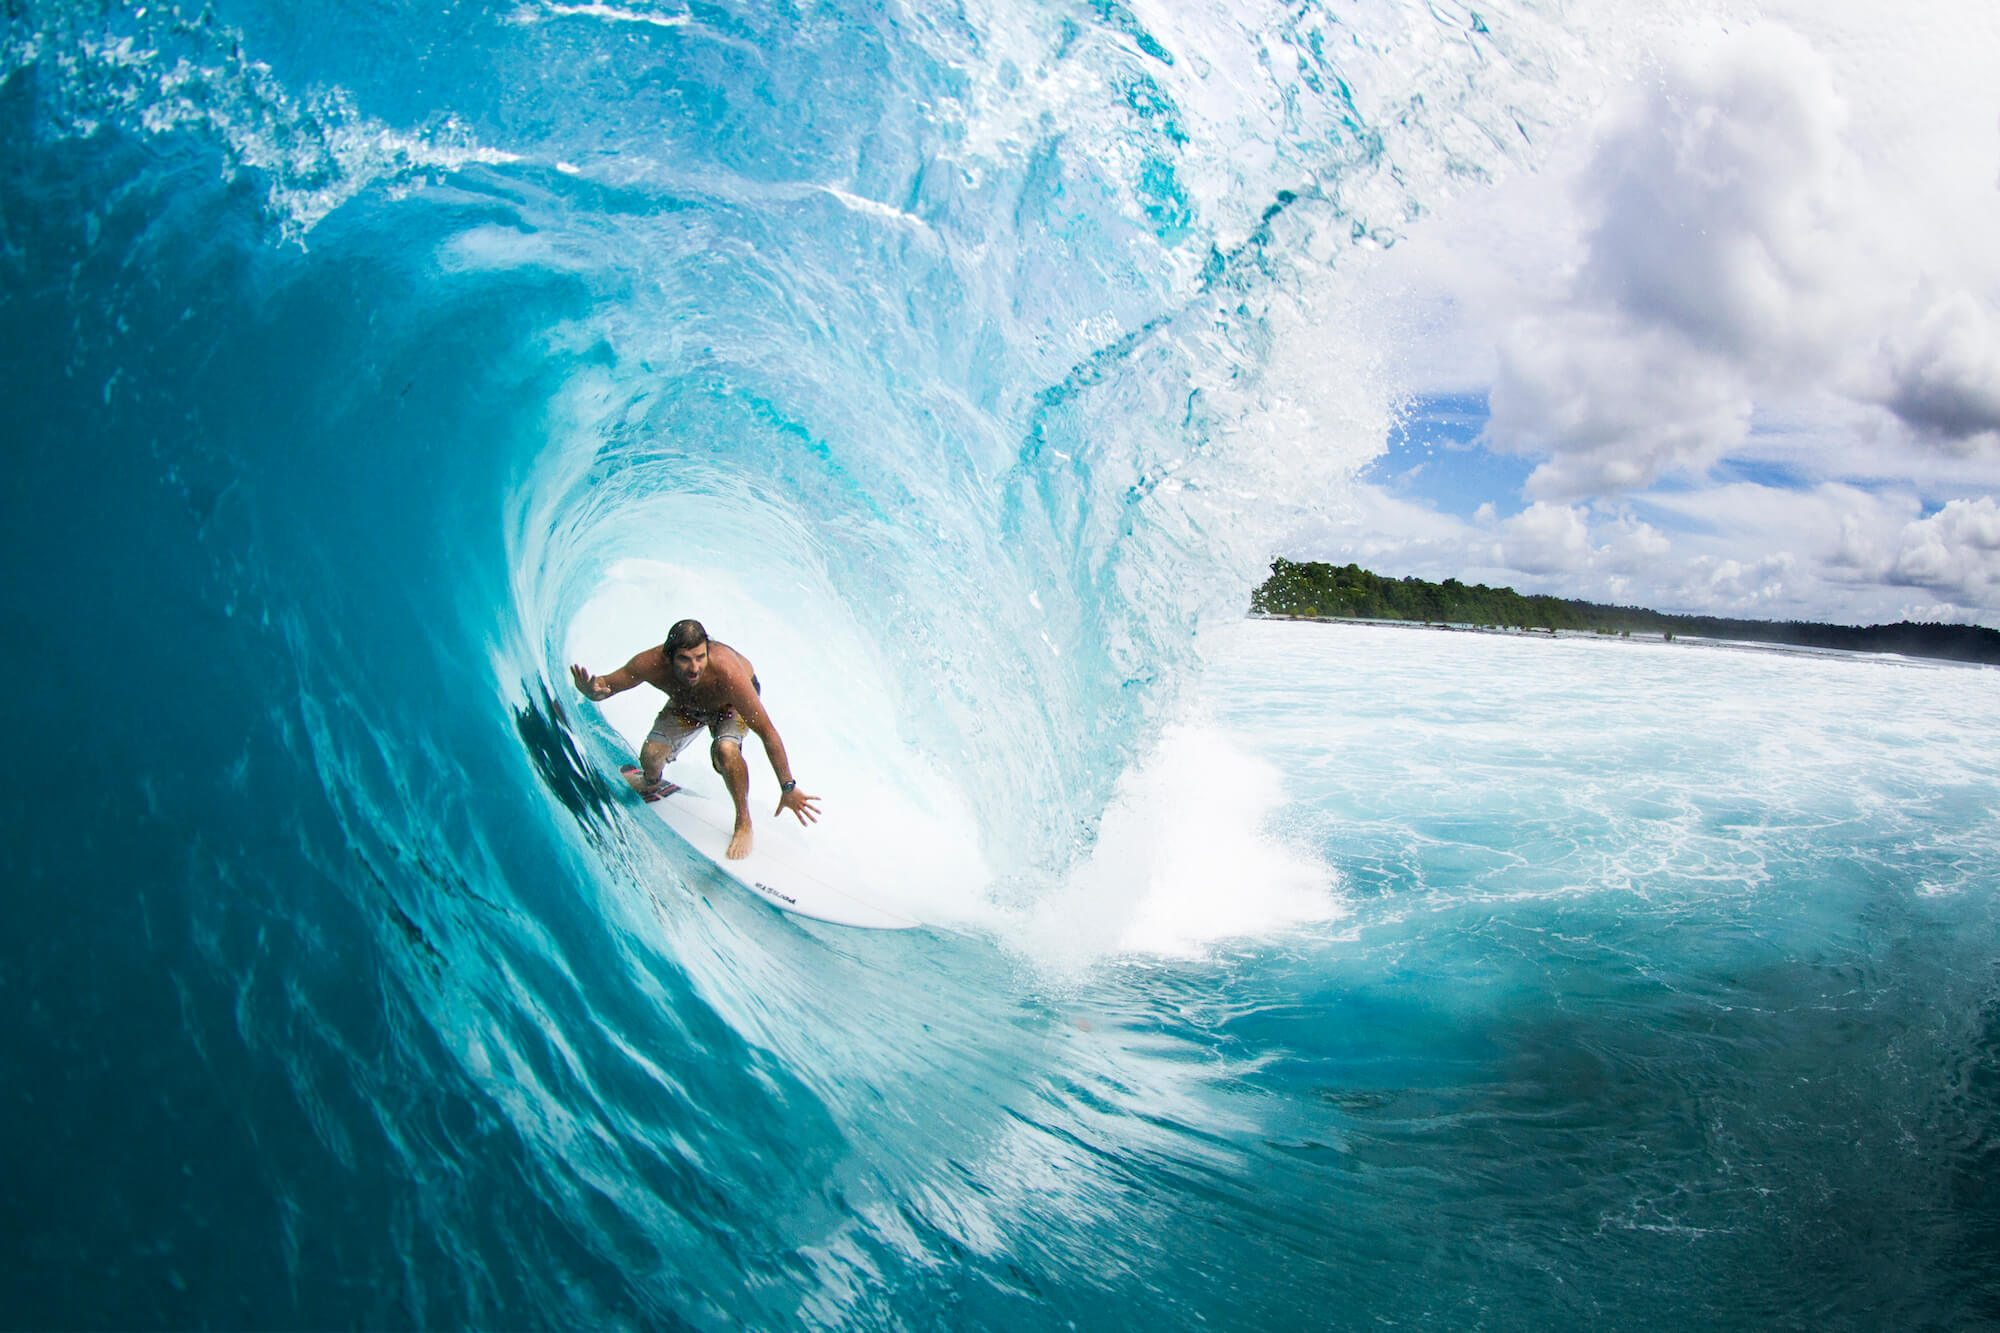 a surfer in drift surfing perfectly got the wave at surf banyak